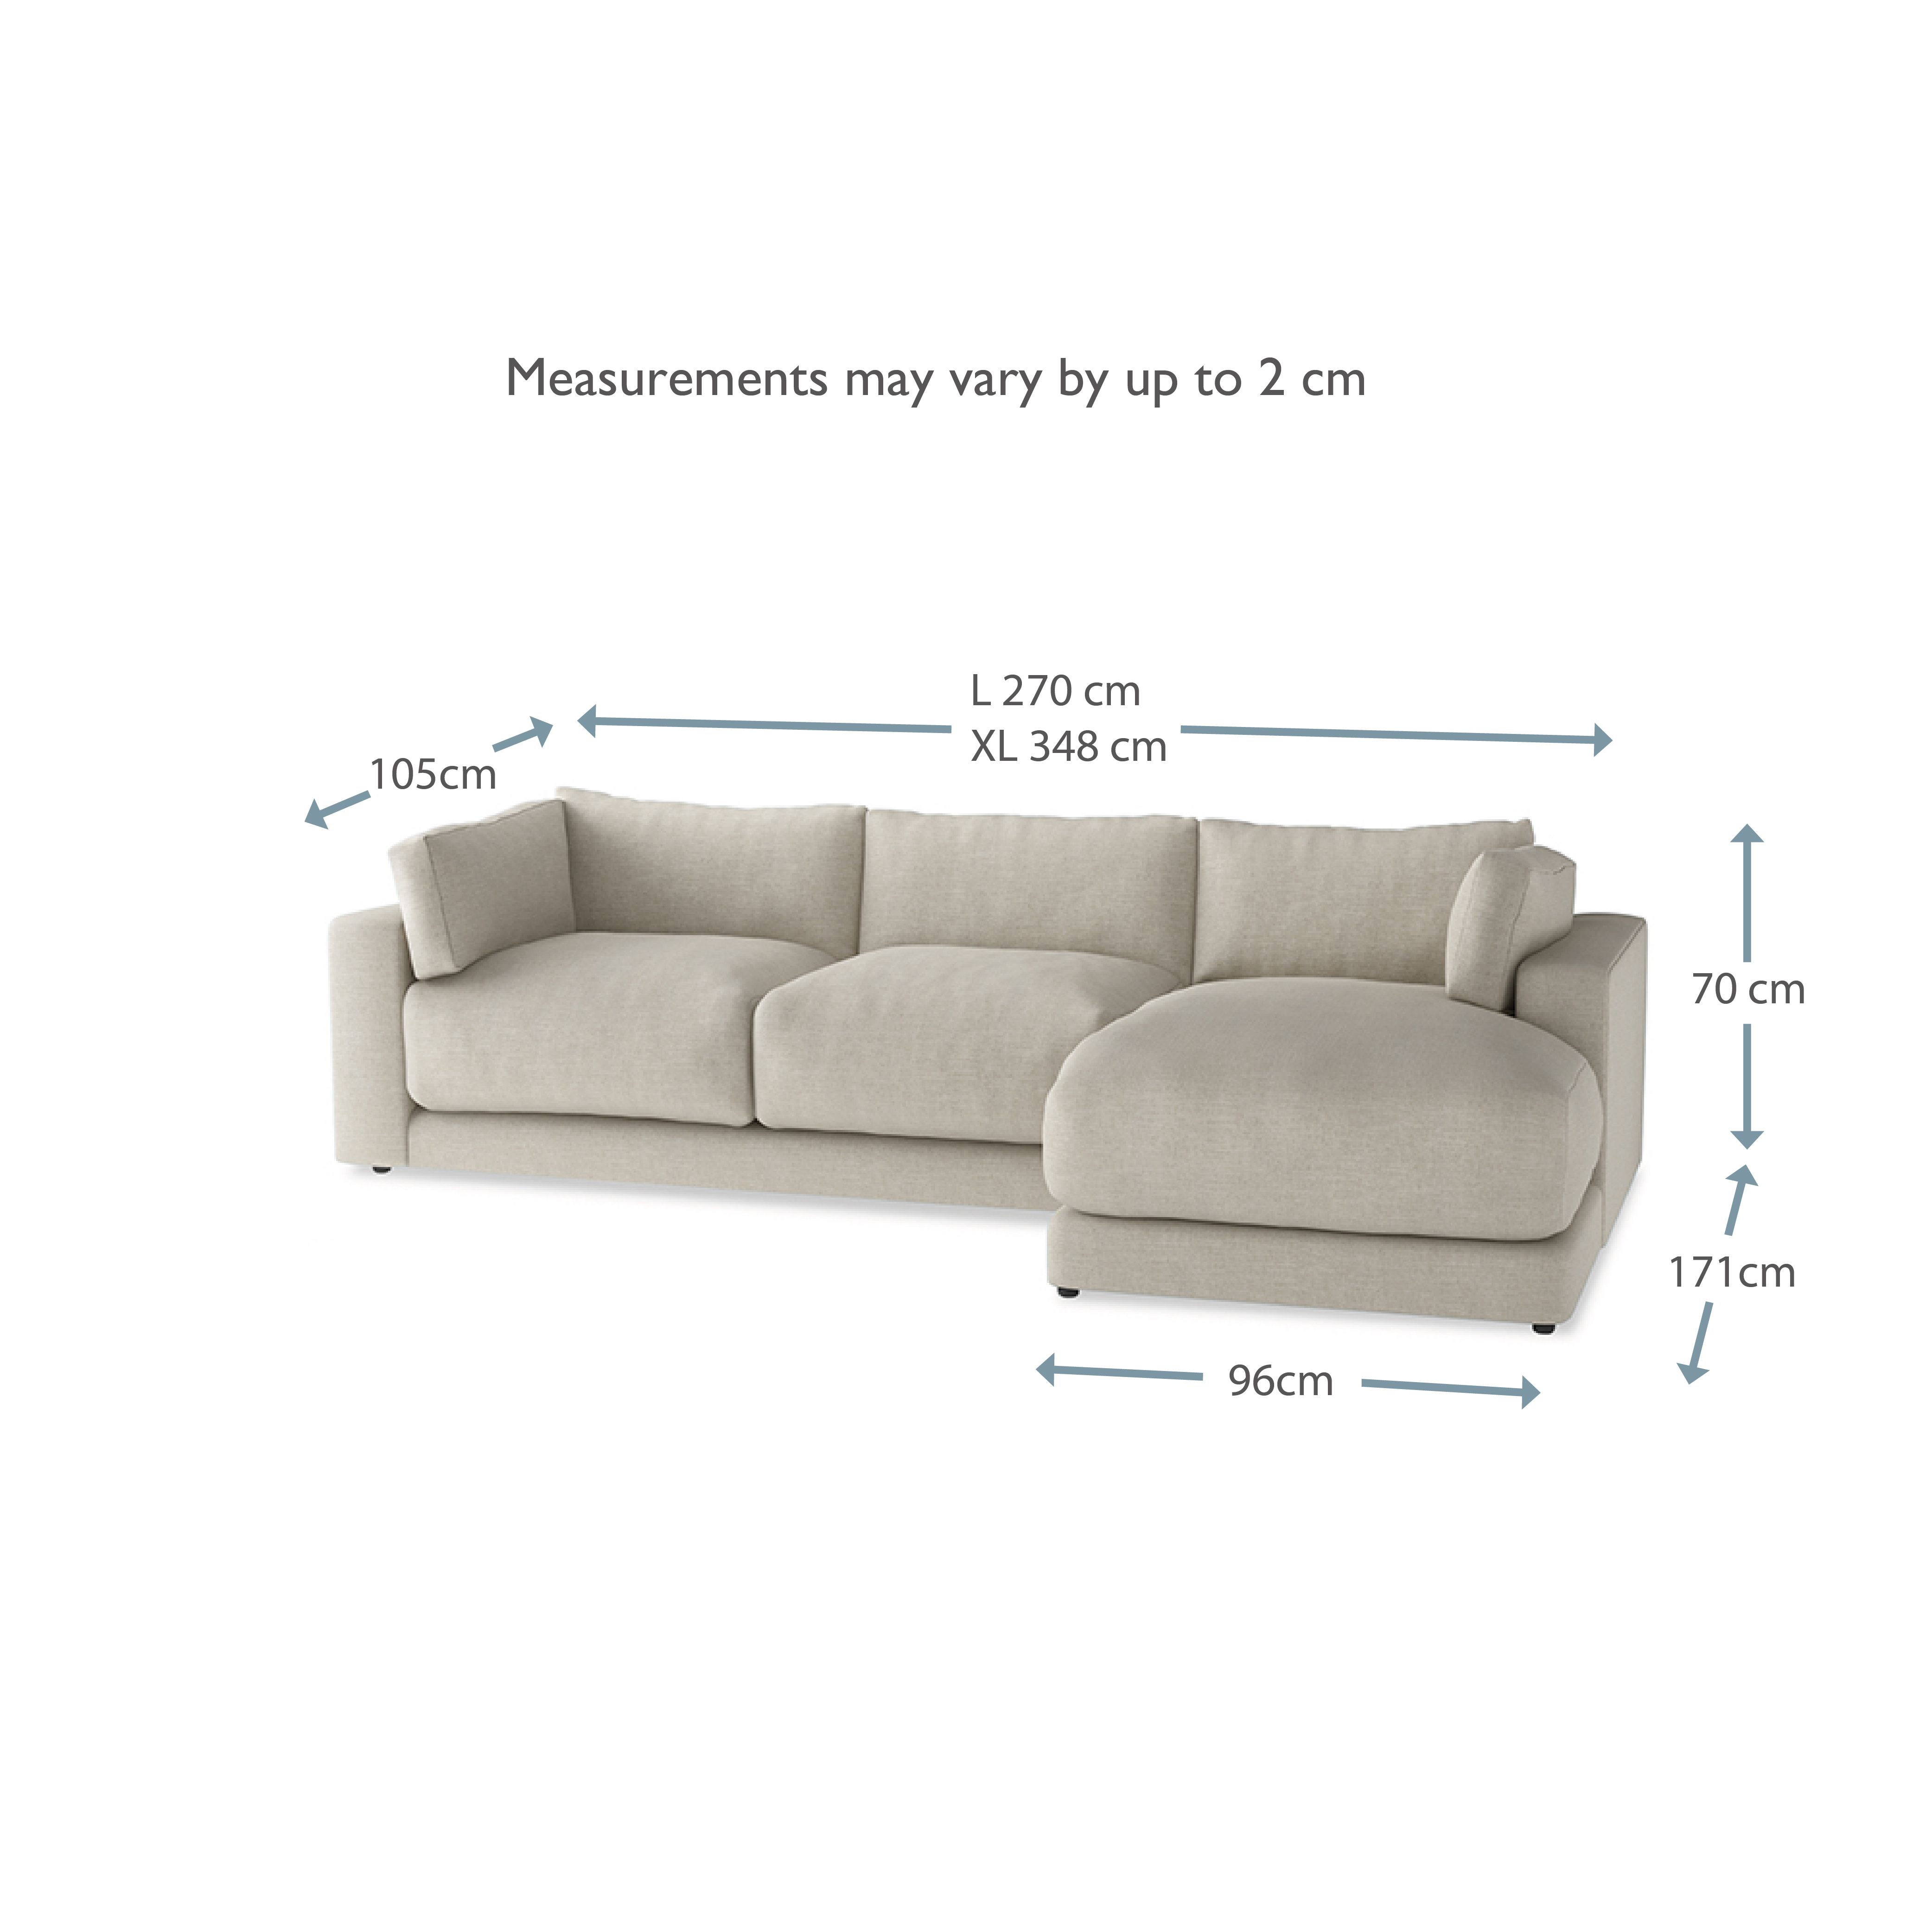 product pipe champagne measurements loveseat overstock garden blooms free today industrial home shipping